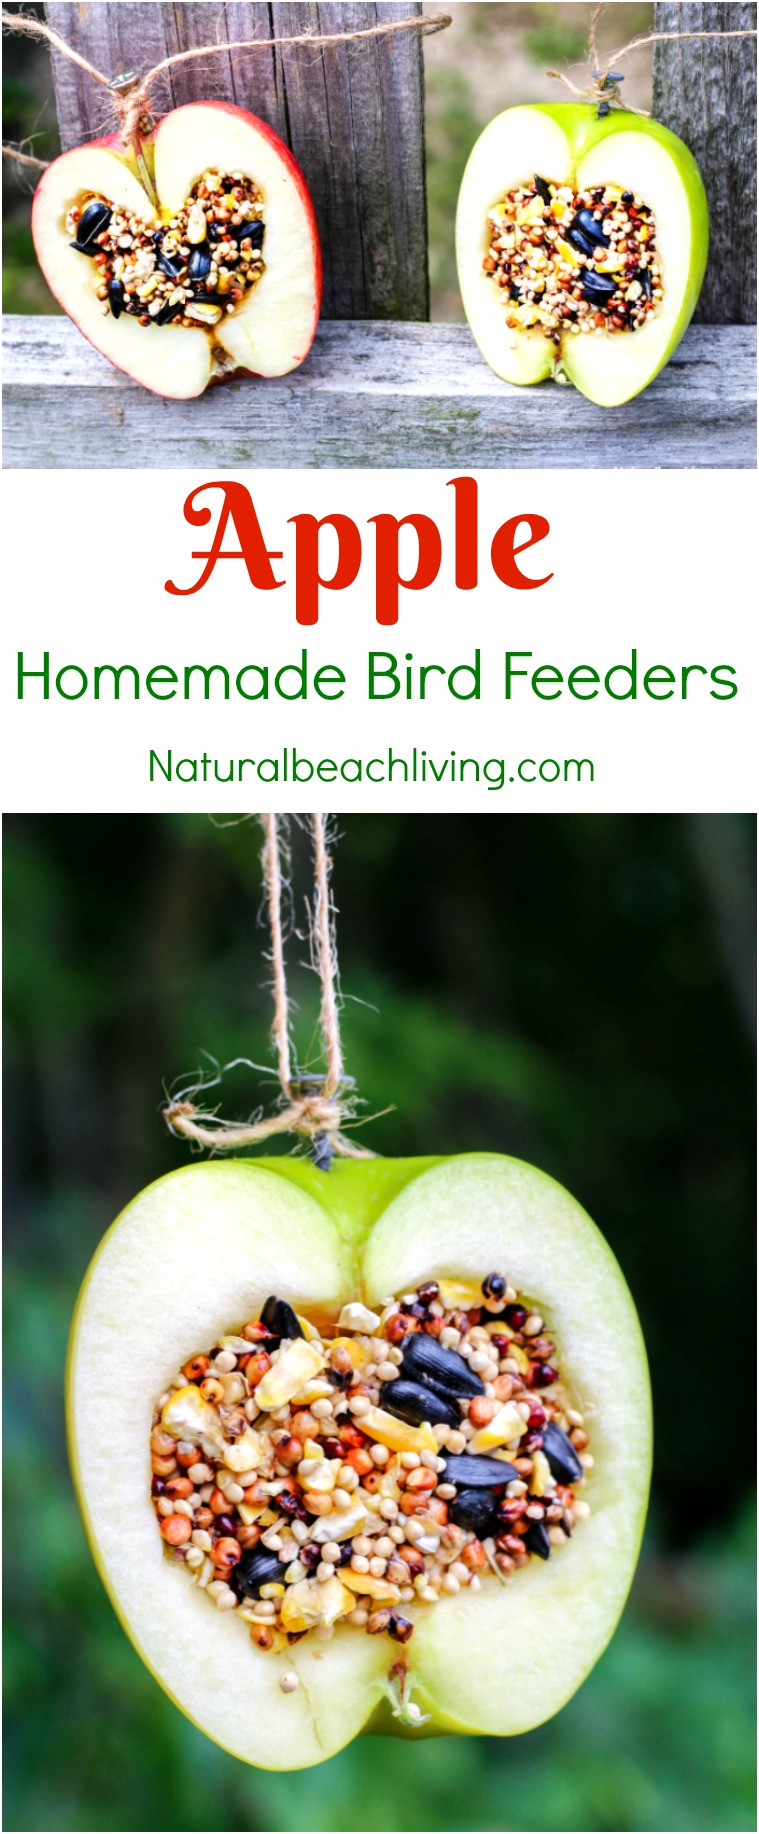 How to Make Apple Birdseed Homemade Bird Feeders, Apple Bird Feeders, These APPLE BIRDSEED BIRD FEEDERS ARE THE BEST! You can Invite the birds to your yard with these Easy bird feeders. DIY bird feeders are a great family craft and a fun way to learn about nature. Adding in apples for fall is an extra bonus and make a Great Fall Craft for Kids, Homemade Bird Treats, From How to Make bird seed ornaments to DIY birdseed ornaments and Apple Activities for Kids, we have hundreds of fall ideas and activities